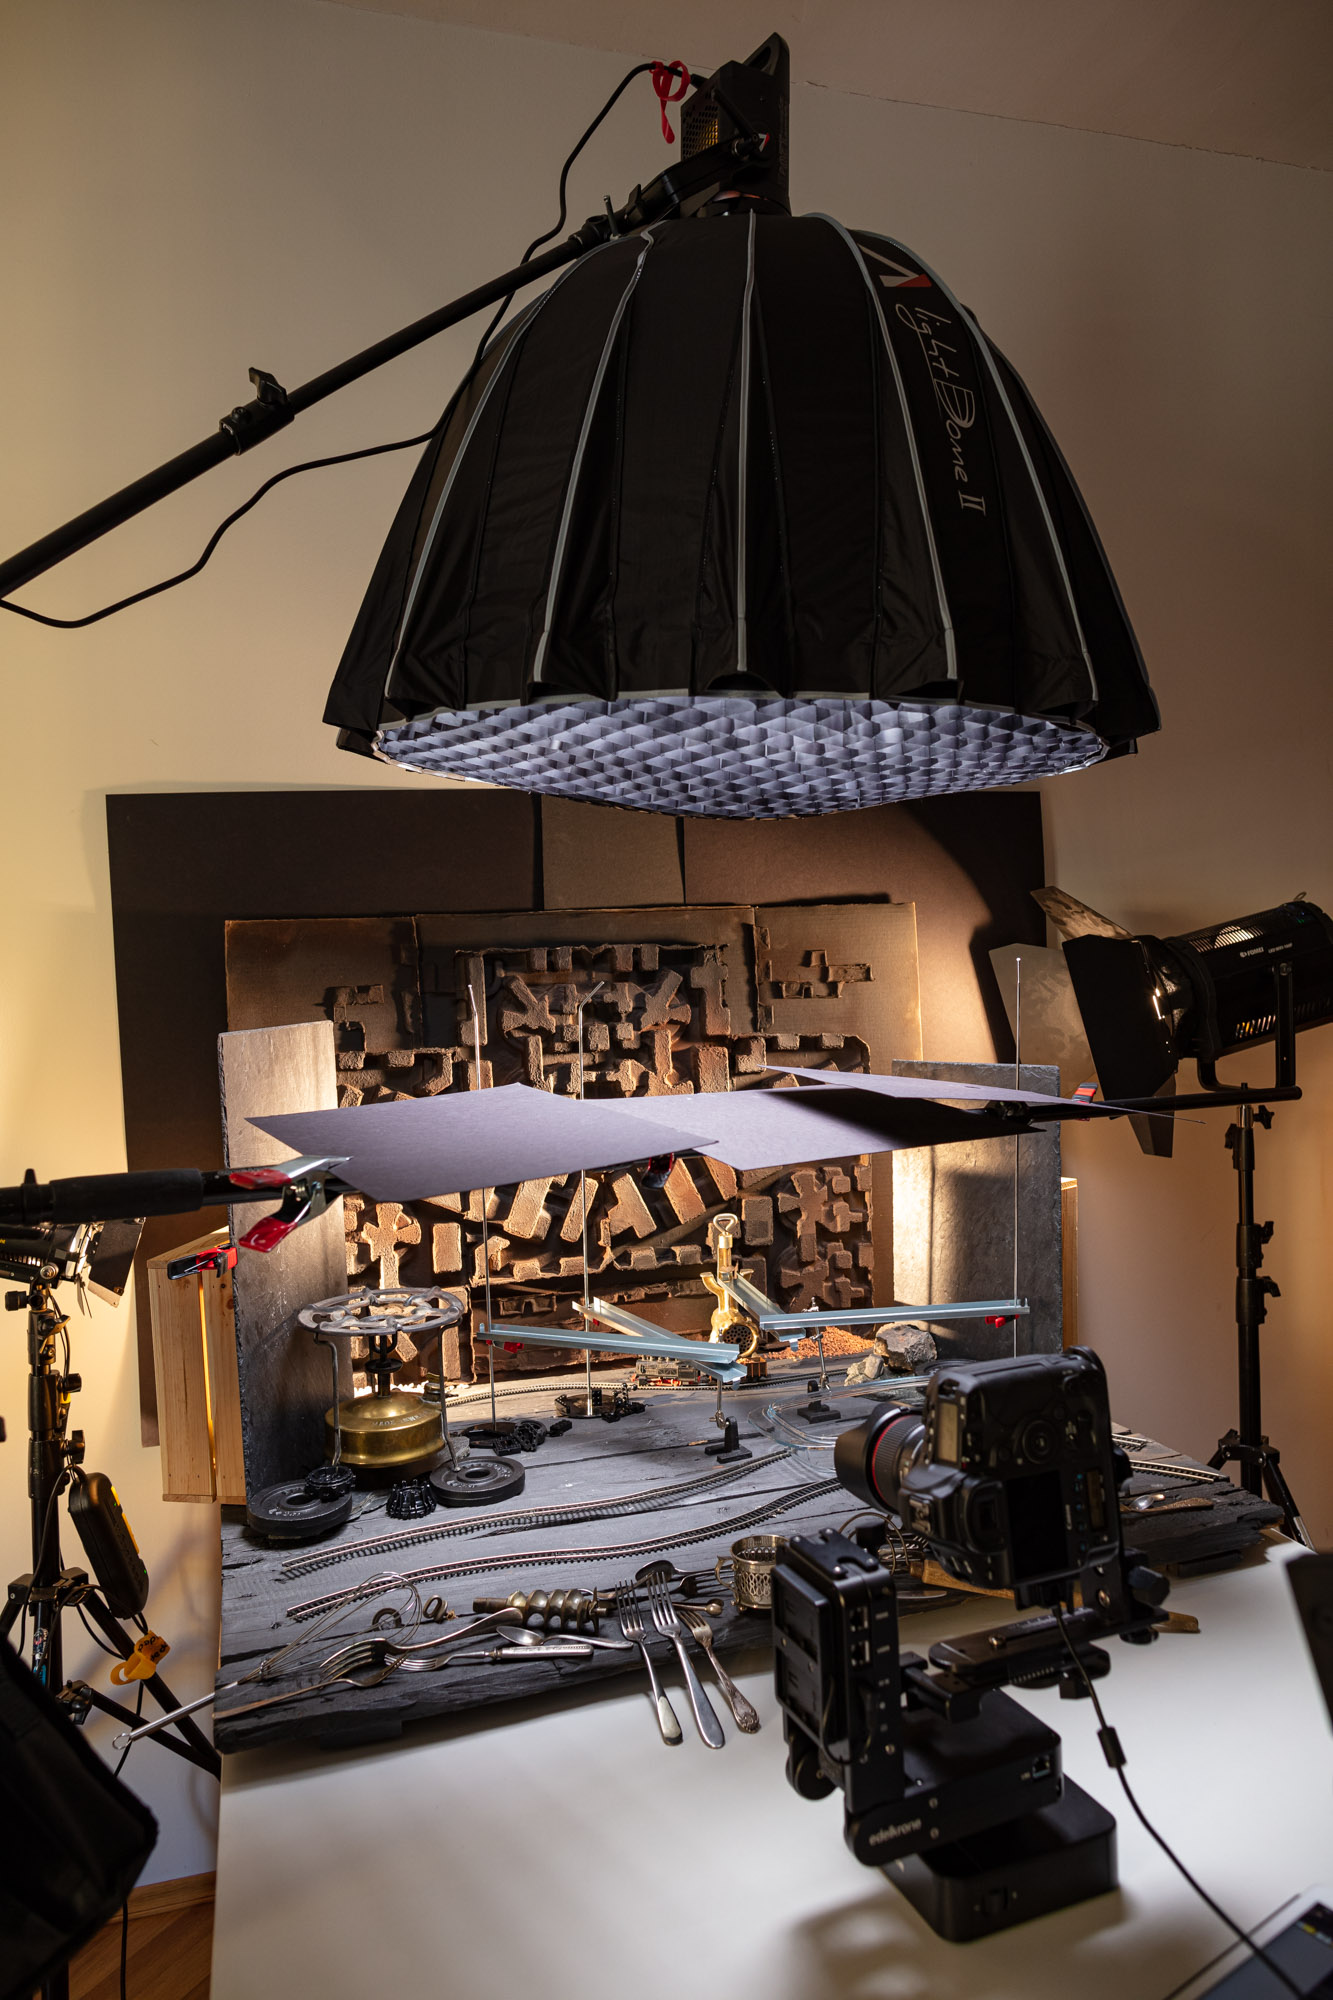 """Behind the scenes at the video production of """"Vegan Cherry Crumble Pie Recipe"""". A big table set up resembling a """"pie factory"""". In a studio with various lamps and cameras."""